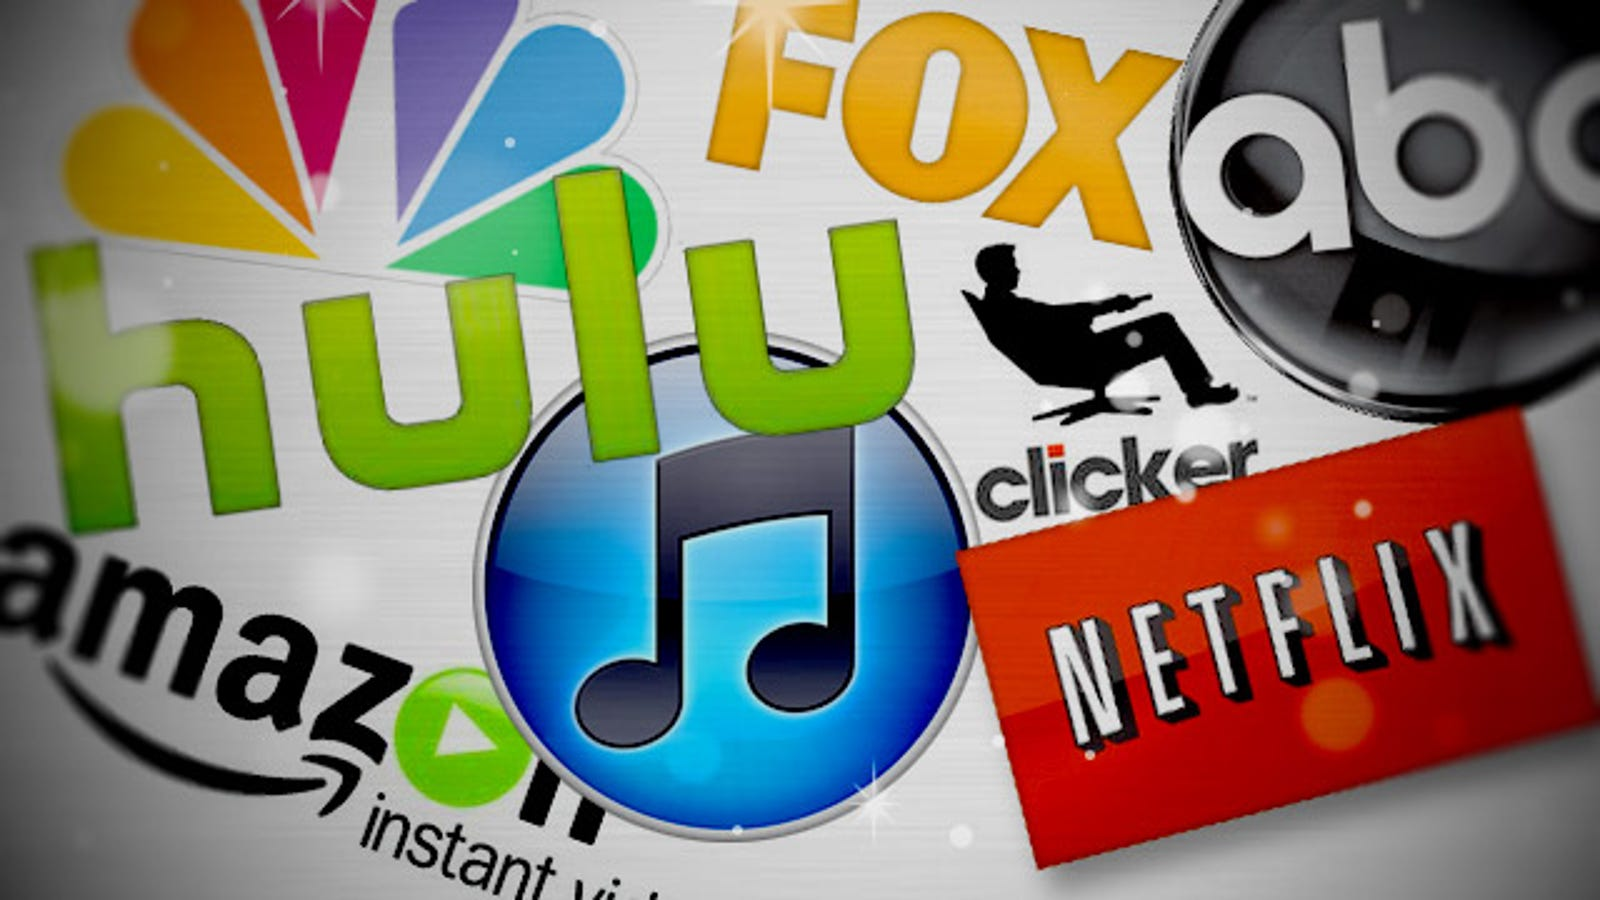 How Can I Ditch Cable and Watch My TV Shows and Movies Online?